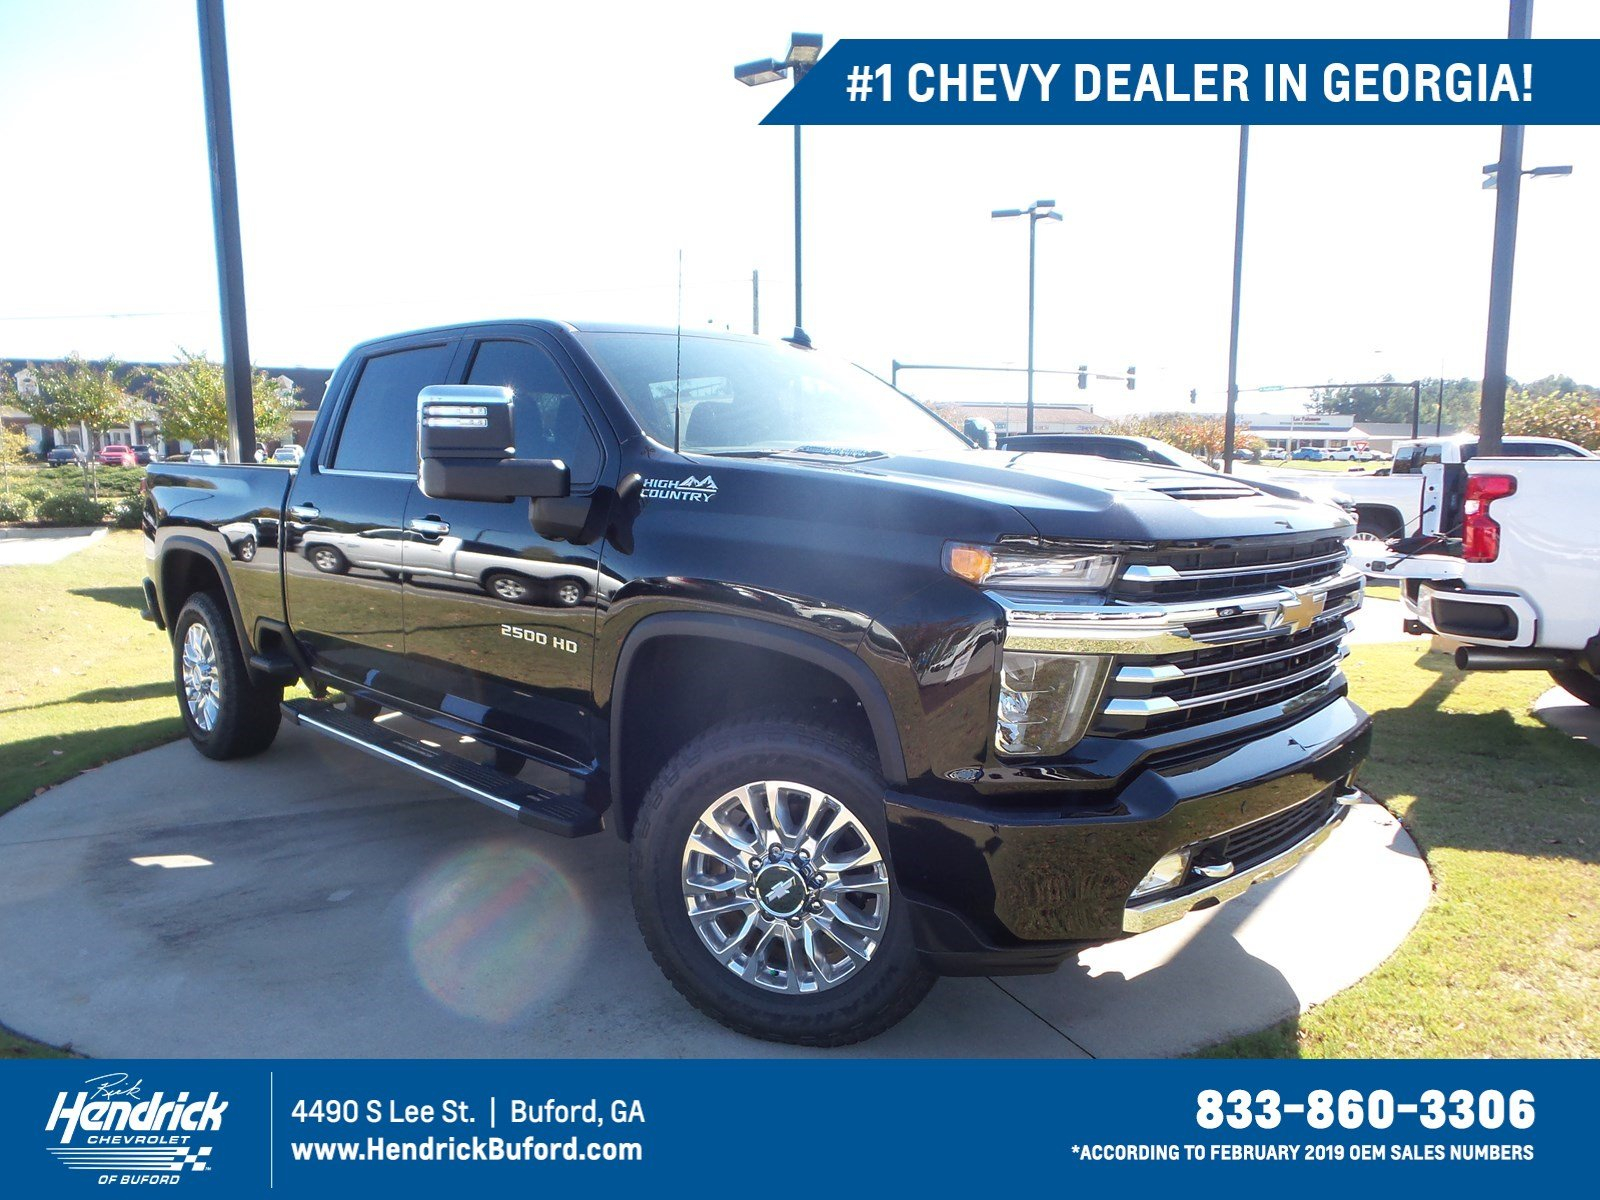 New 2020 Chevrolet Silverado 2500Hd High Country With Navigation & 4Wd 2021 Chevy Silverado 2500Hd Pictures, Parts, Running Boards